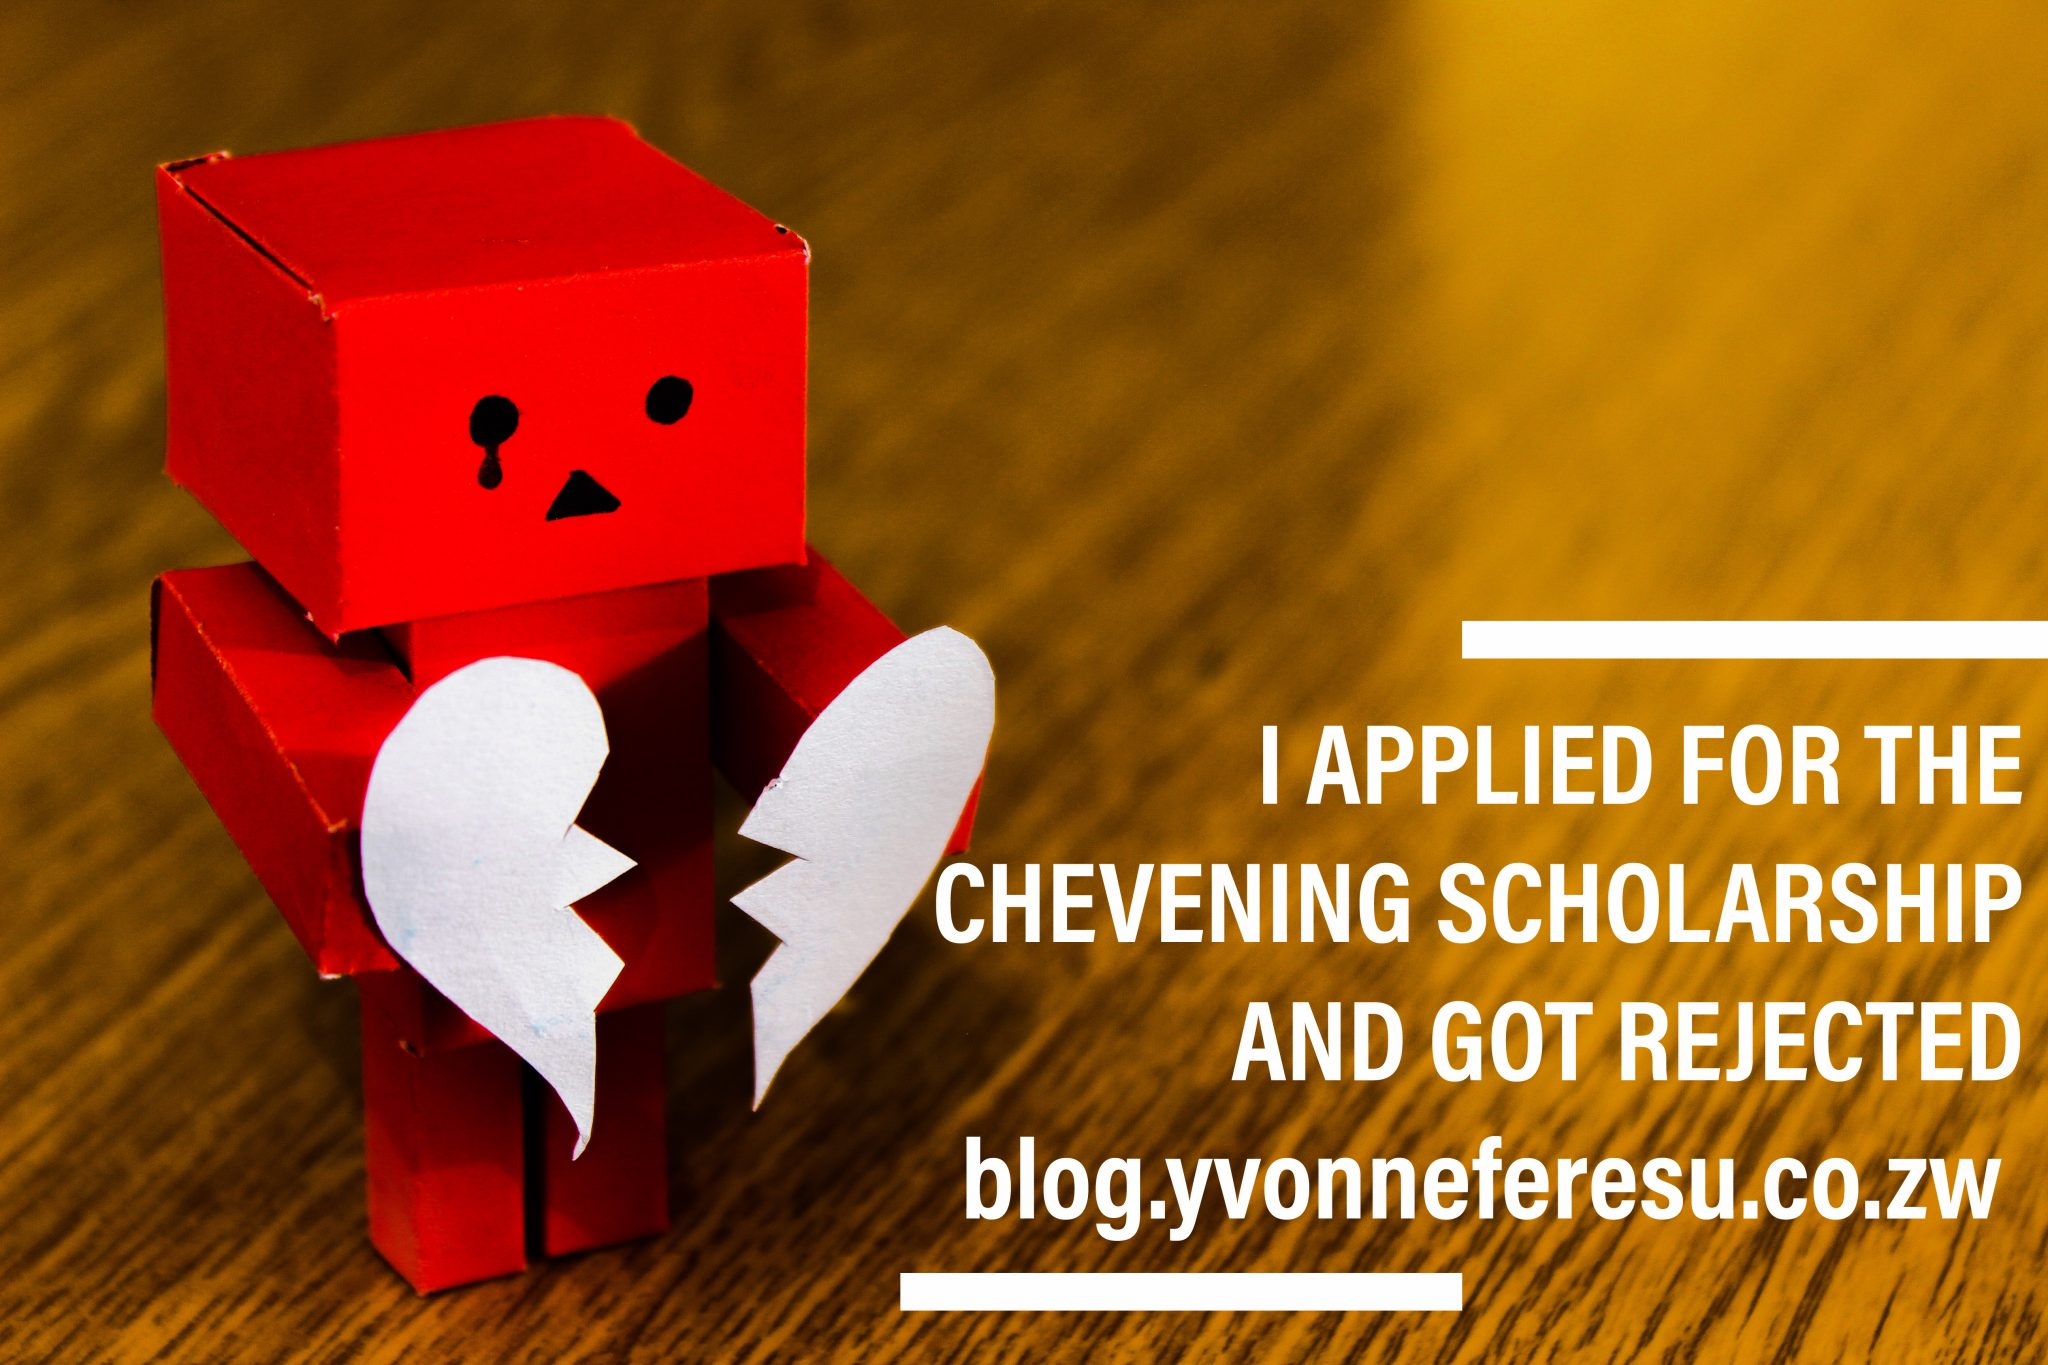 I applied for the Chevening scholarship and got rejected.